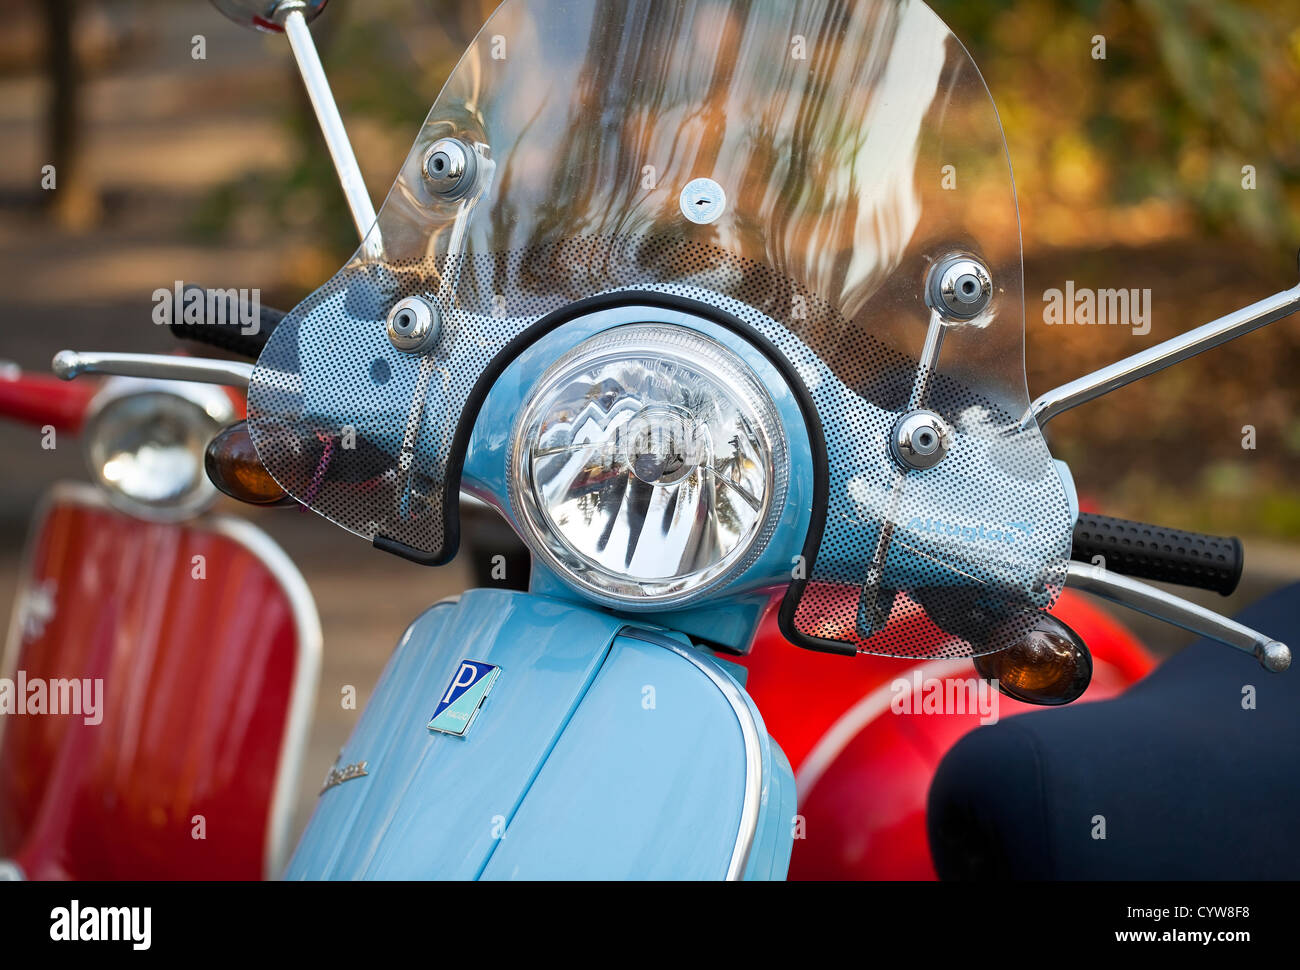 Vespa scooters, close up - Stock Image